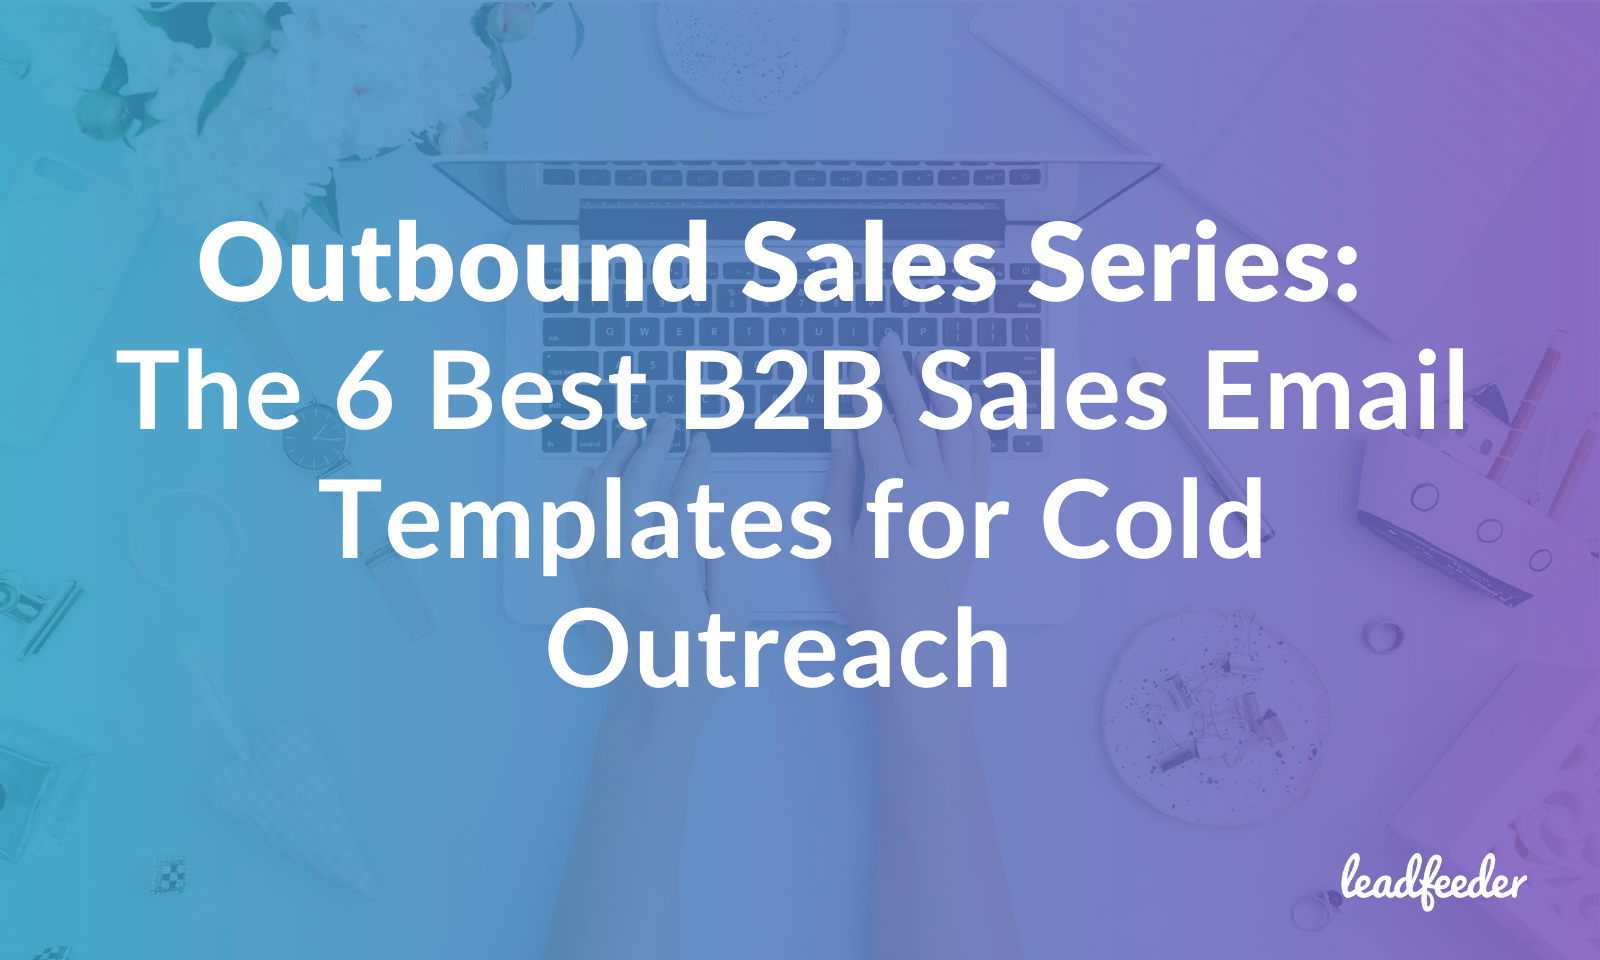 outbound sales b2b email templates